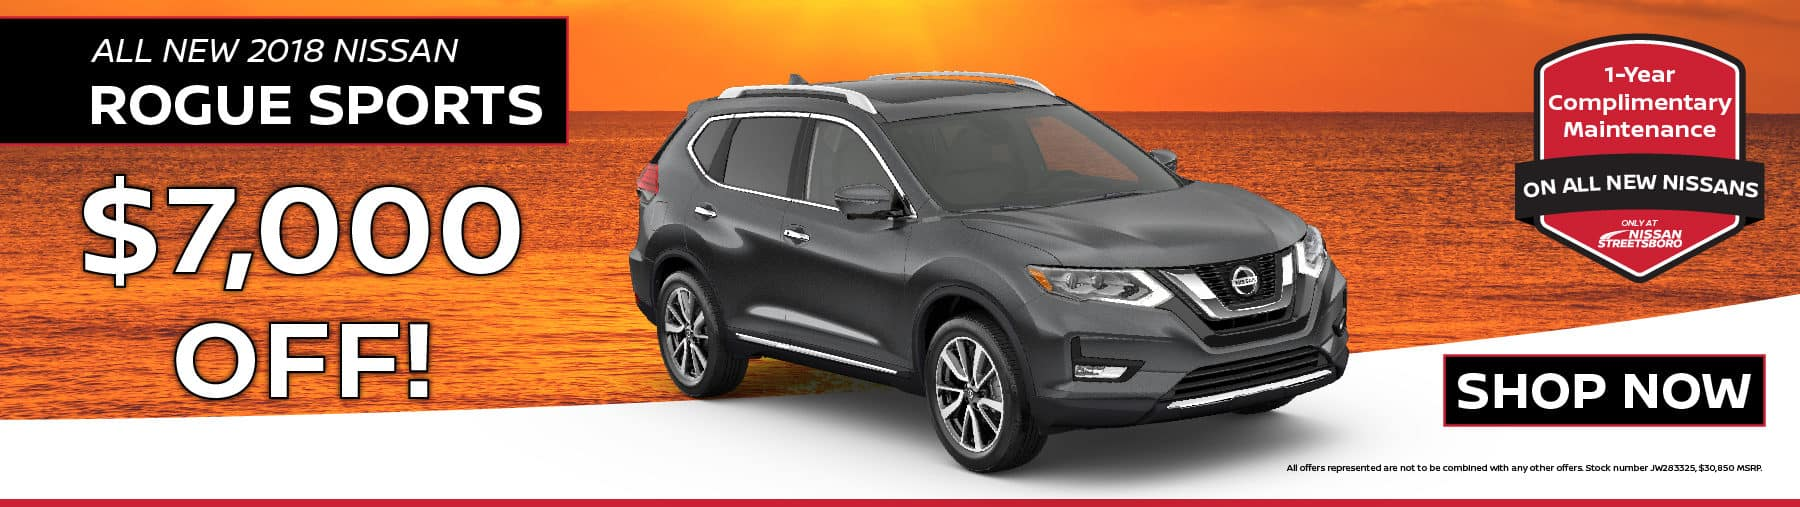 2018 Nissan Rogue Special